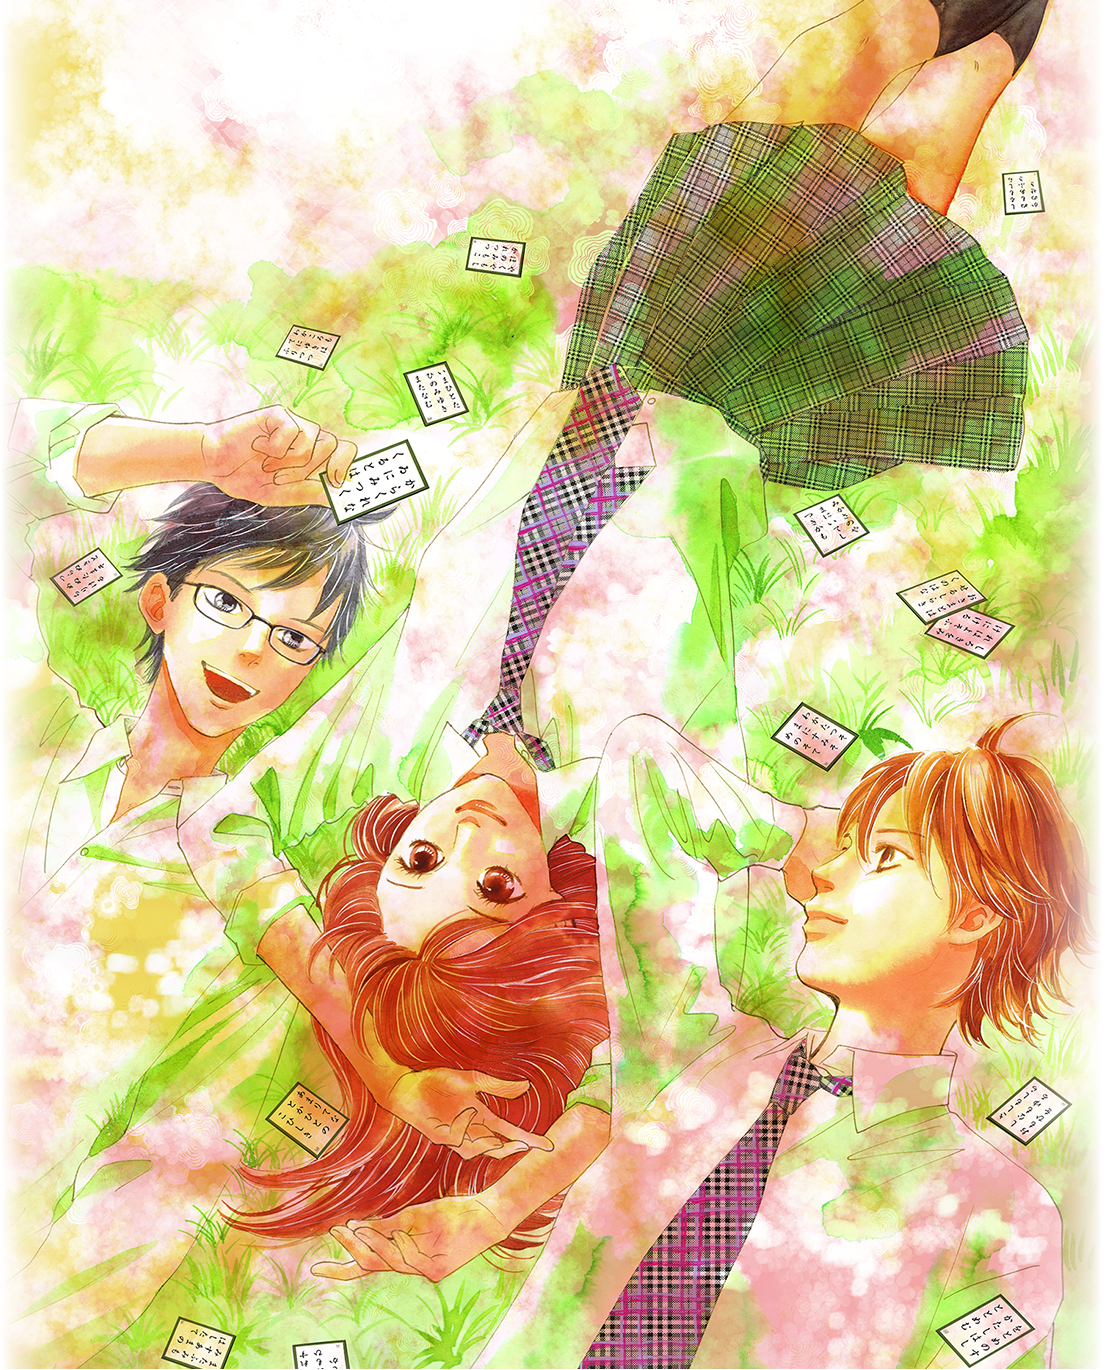 http://be-love.jp/content/files/chihaya/images/main.png